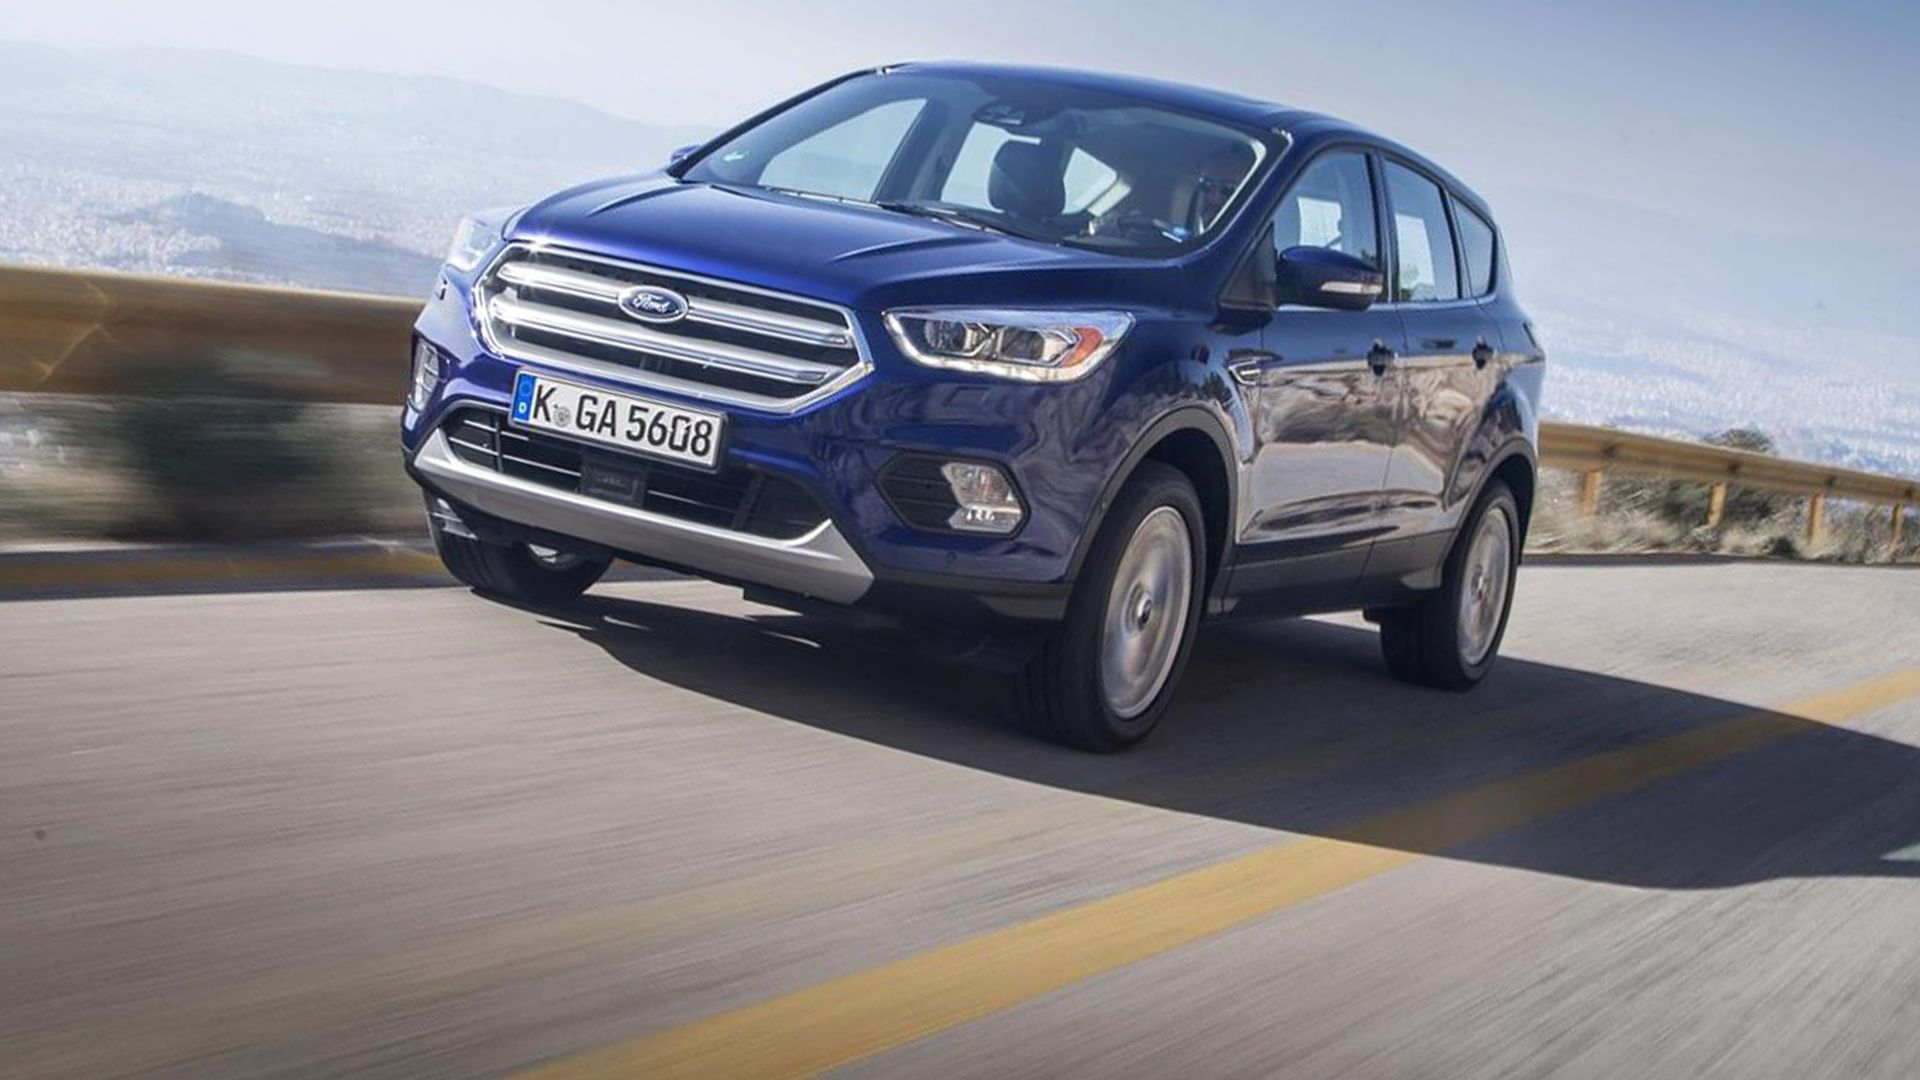 2019 Ford Kuga First Pictures Ford Kuga 2019 Ford One Pic